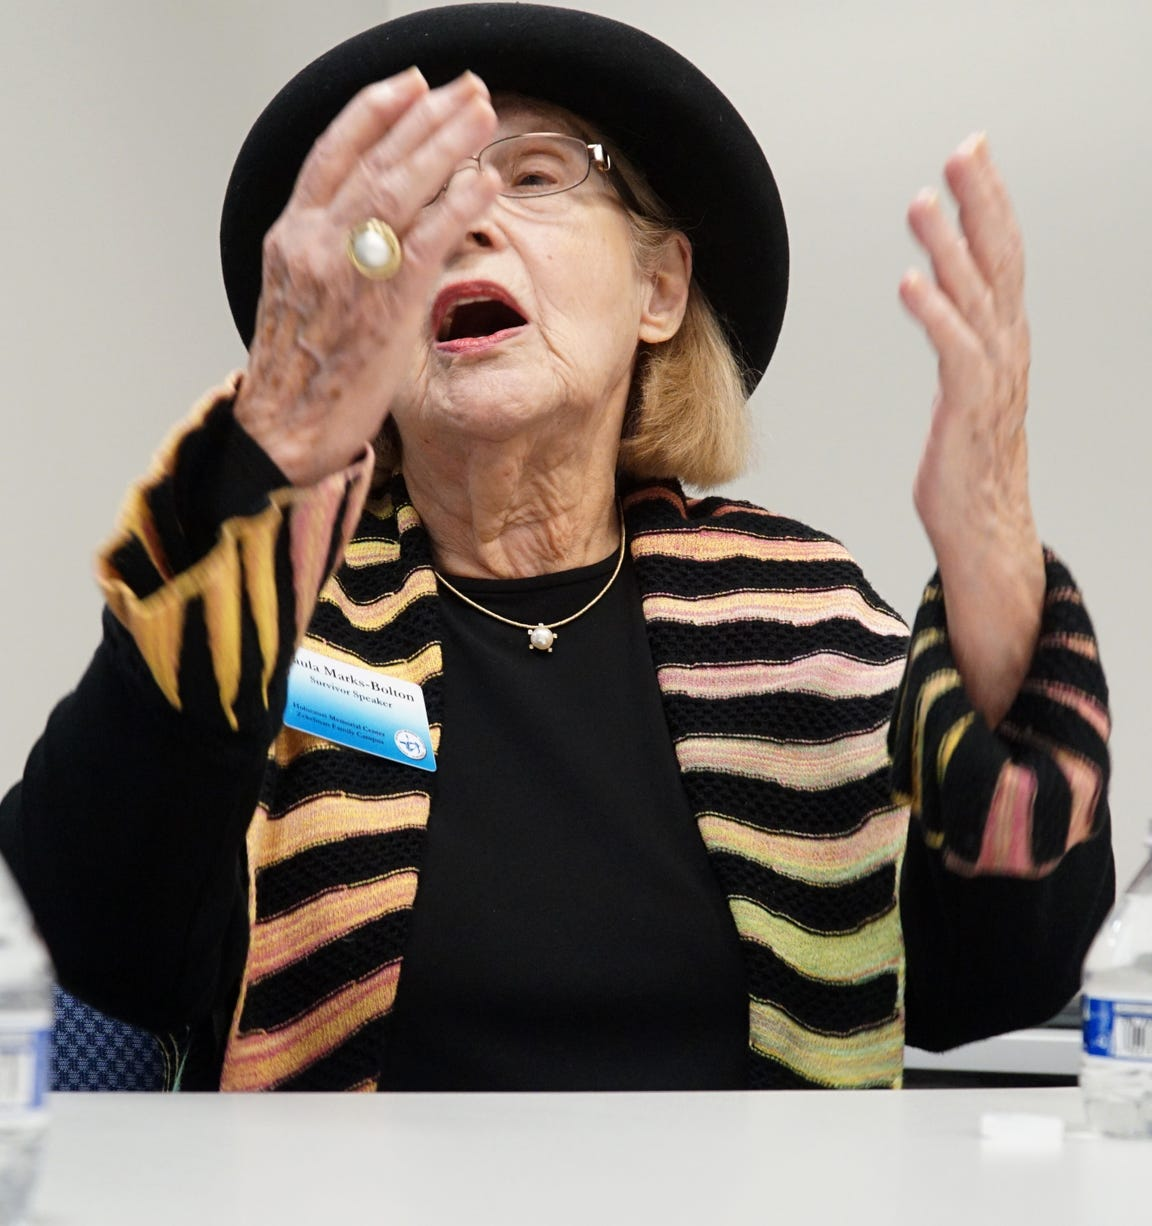 """As the Nazis and German Gestapo were emptying her Polish ghetto of Lodz and sending her brother off in a truck to an unknown destination Paula Marks-Bolton said that she """"prays to God to save her family"""". She never saw that brother and both parents again after she was separated from them - and eventually sent to Auschwitz. Another brother escaped to Russia and it took her 30 more years before she was reunited with him."""